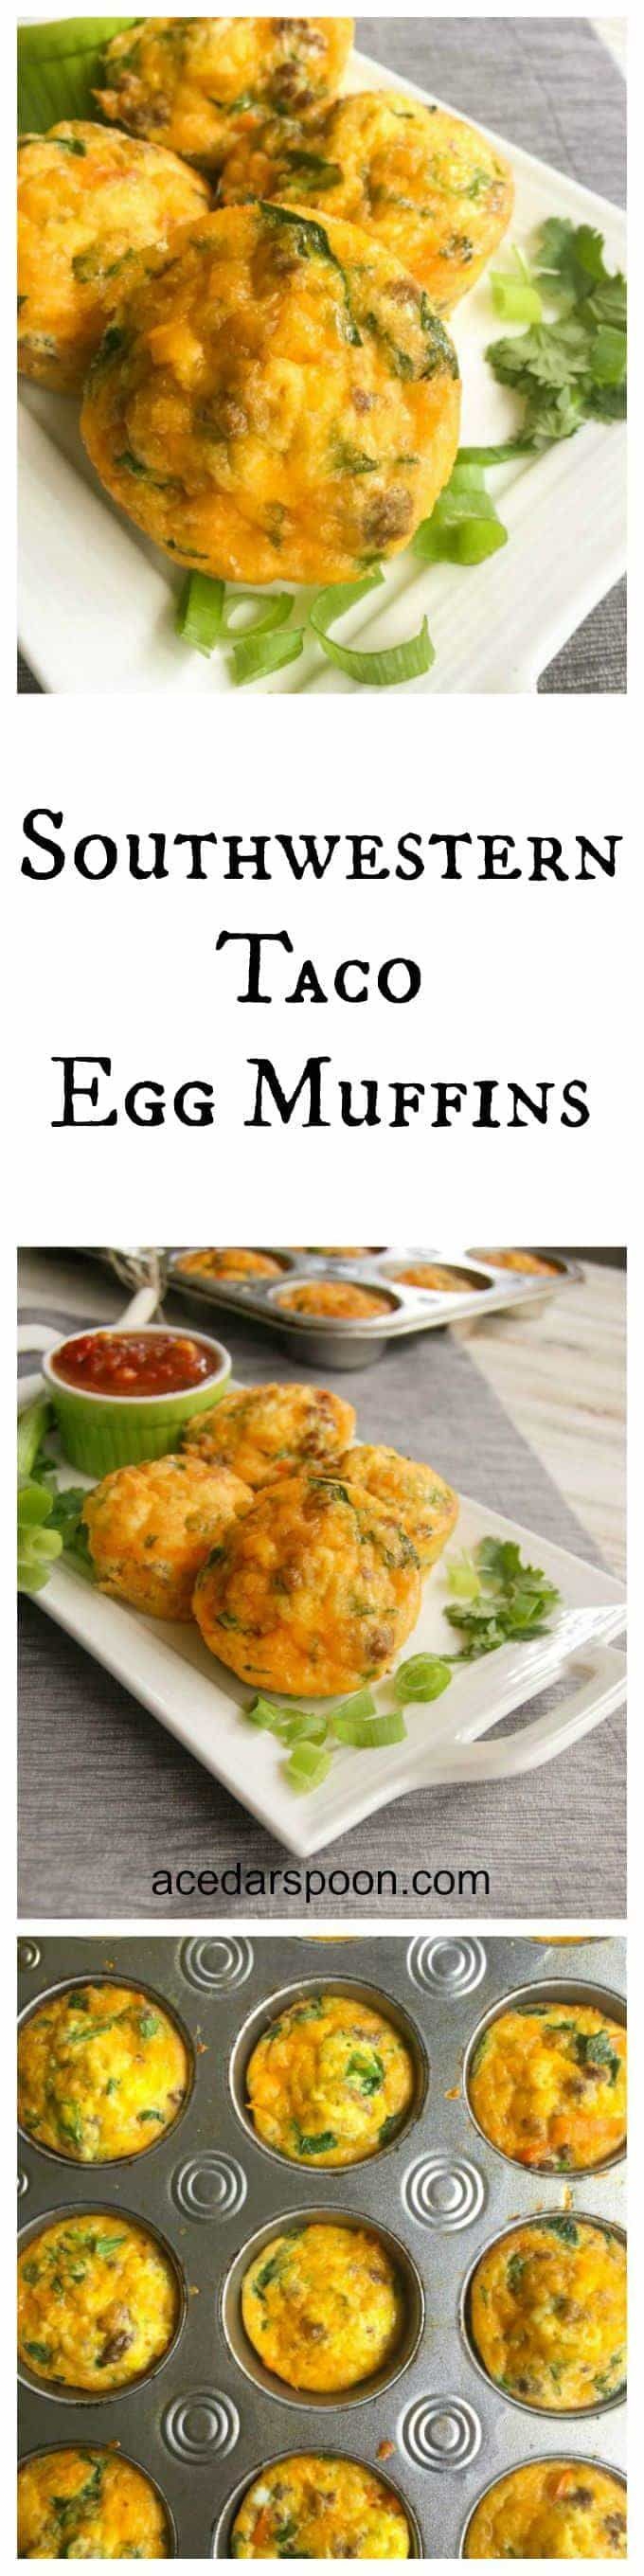 708 best diet friendly foods images on pinterest clean eating egg muffins are protein packed great for lunch or breakfast and easy to make oh and you can freeze them a cedar spoon low carb foods egg muffins forumfinder Choice Image